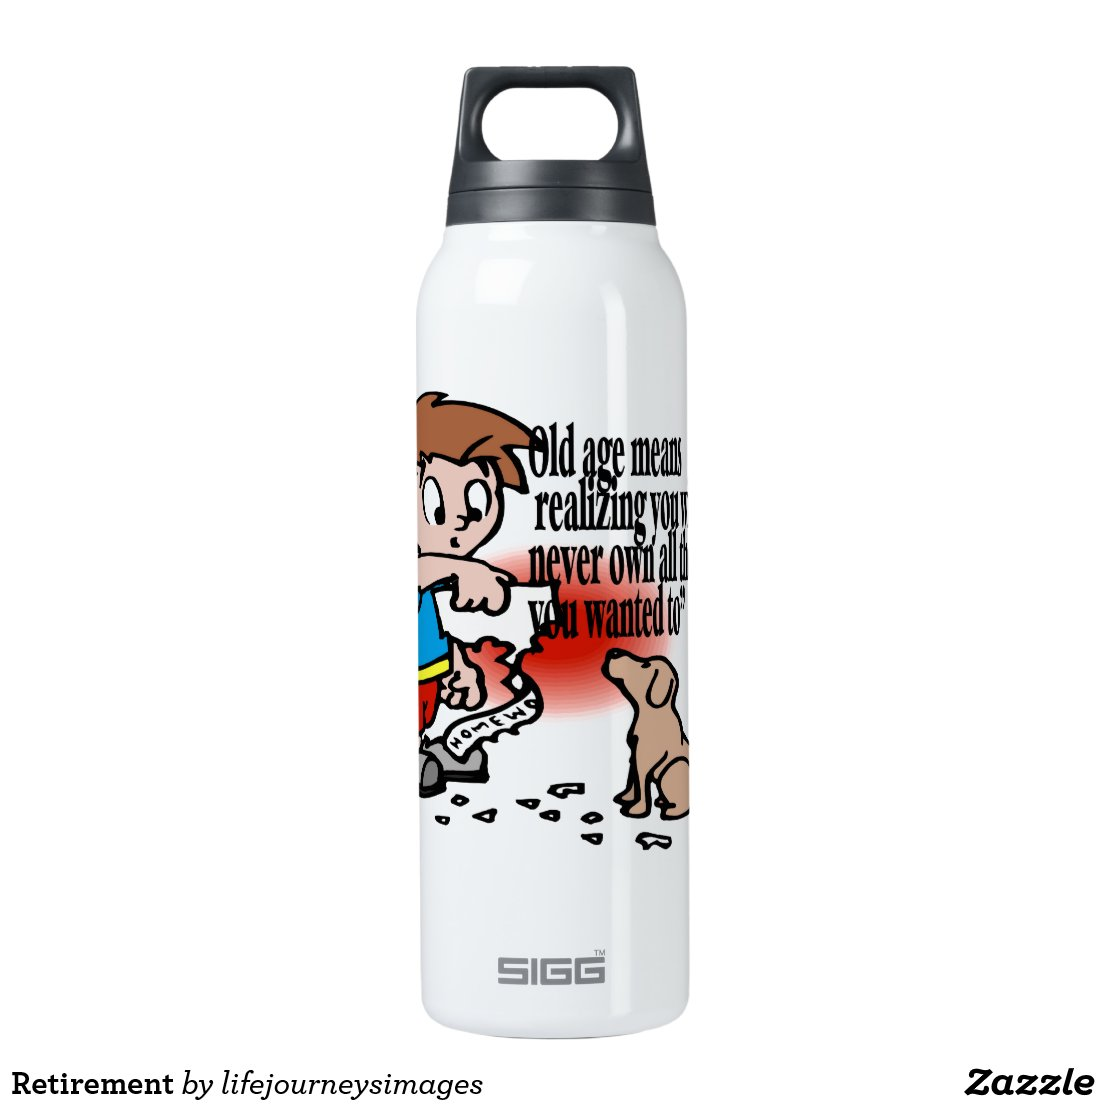 Retirement Insulated Water Bottle